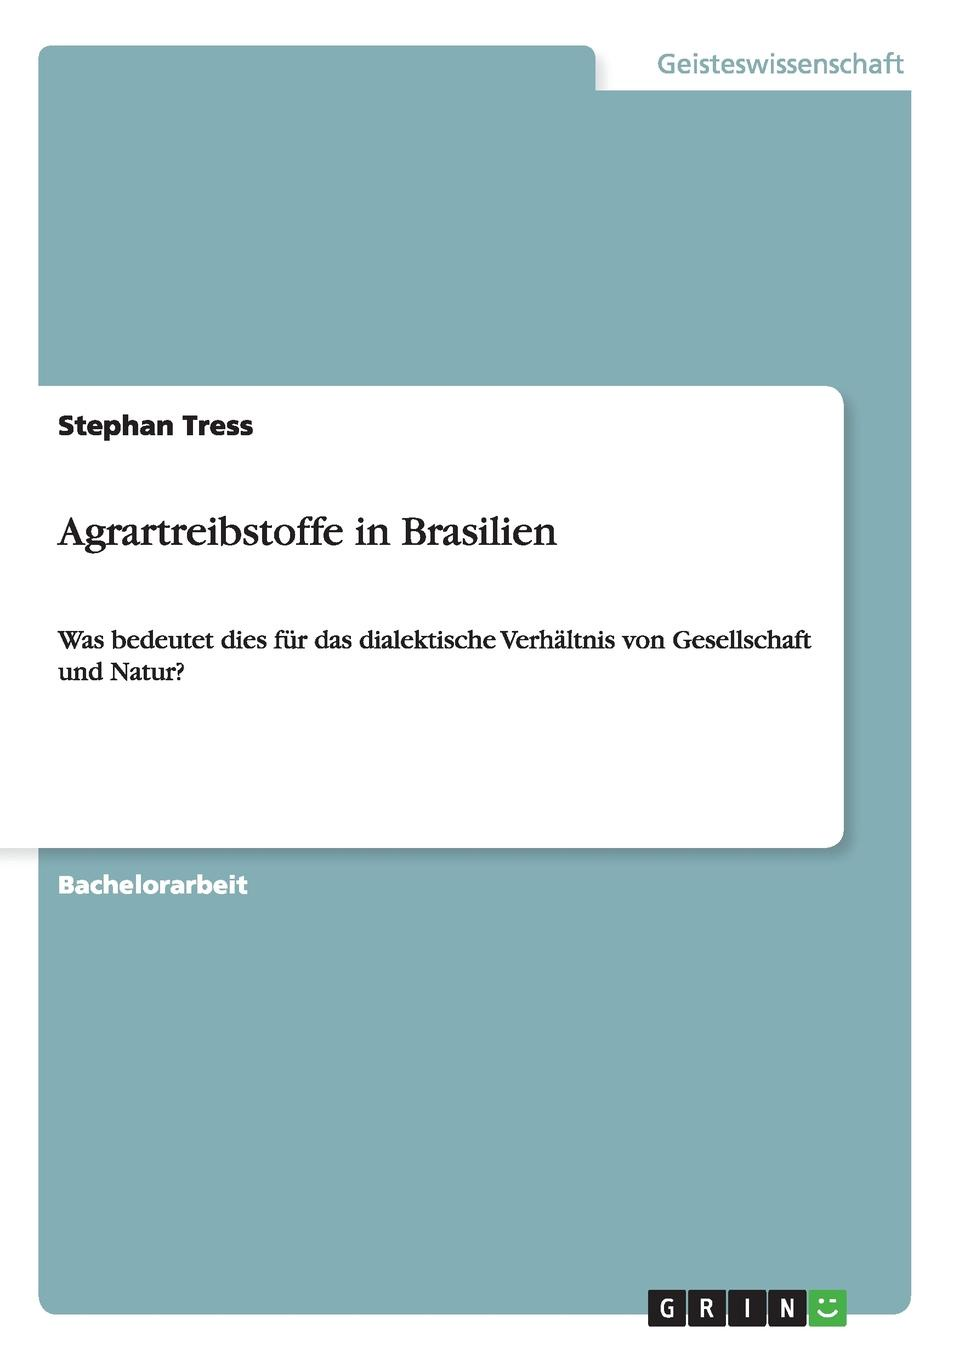 Stephan Tress Agrartreibstoffe in Brasilien momentary rotary roller plunger limit switch 1no 1nc ac 240v 3a xck p